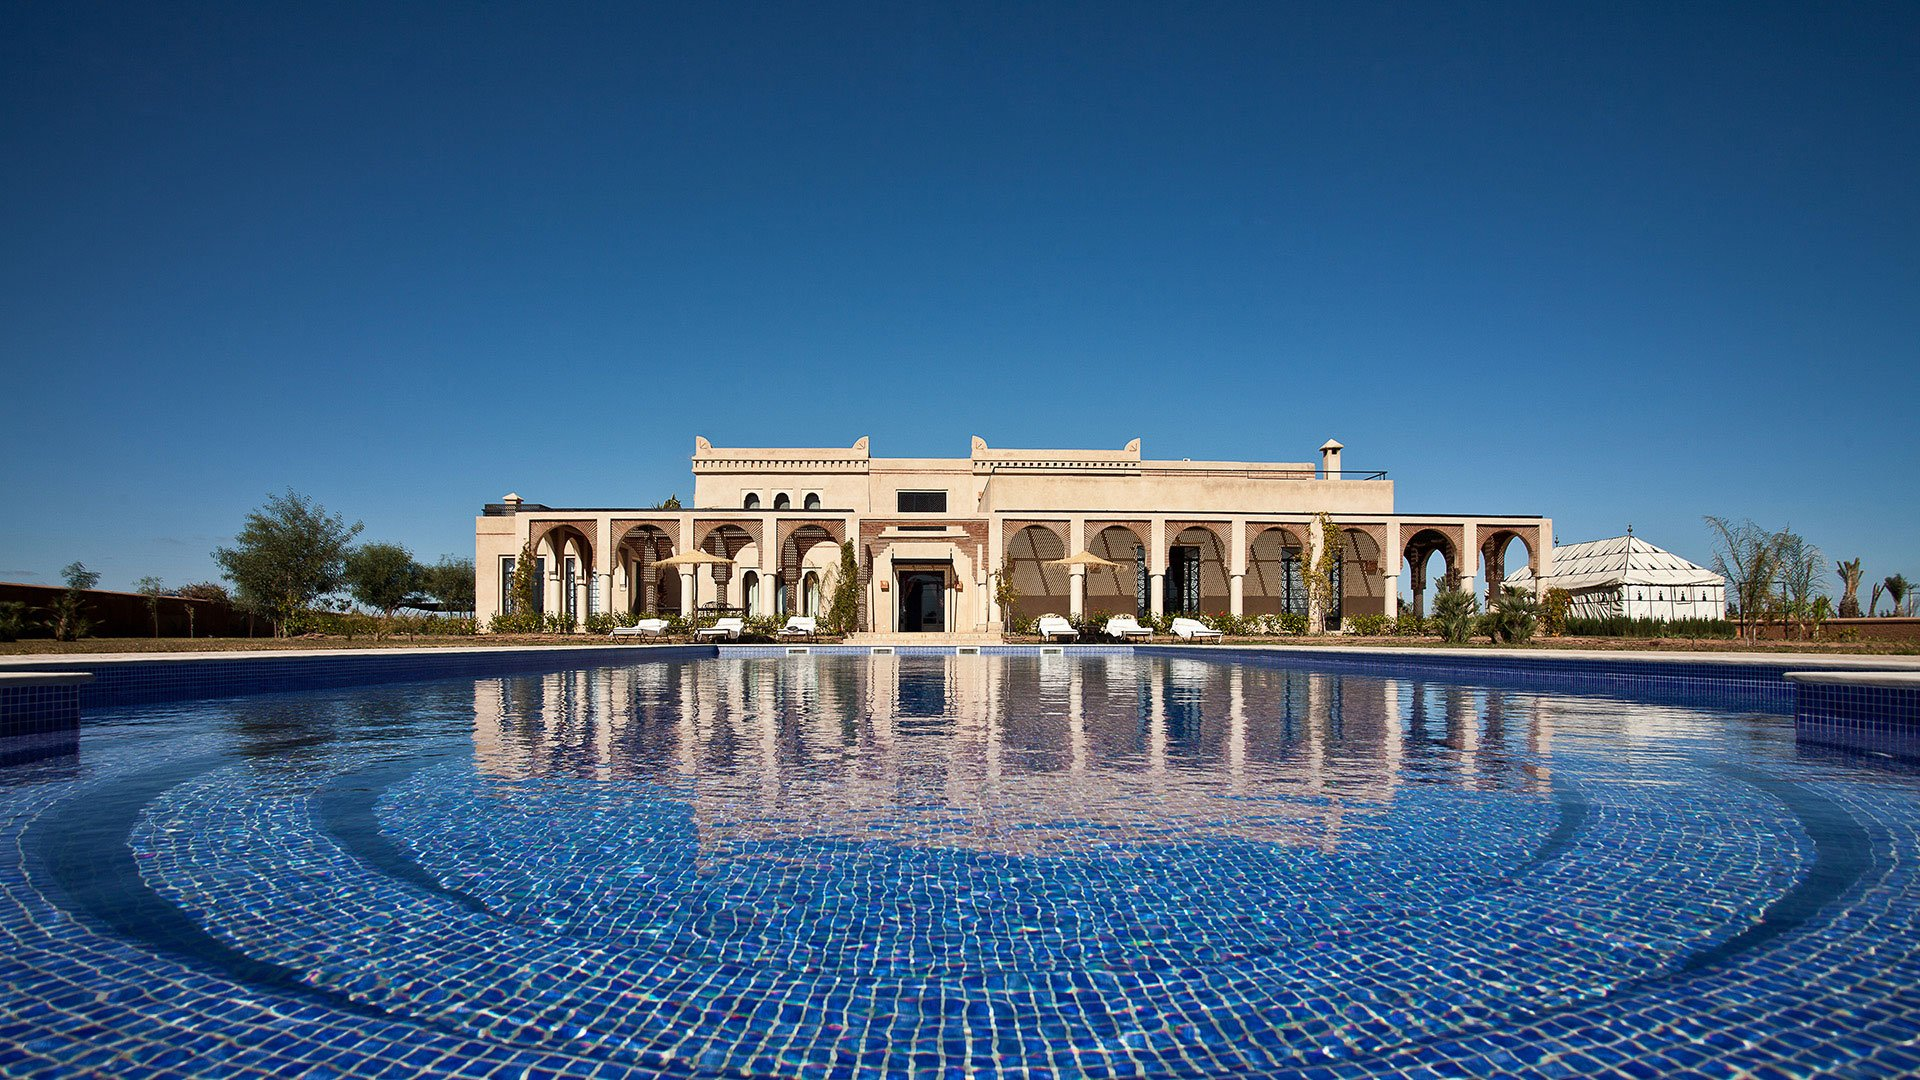 Villa Marrakesh lies just outside the vibrant city of Marrakesh, renowned for its medieval Medina (a UNESCO World Heritage site), labyrinthine passageways, bustling souks, and beautiful riads, made famous by celebrated artists, writers, and cultural figures.